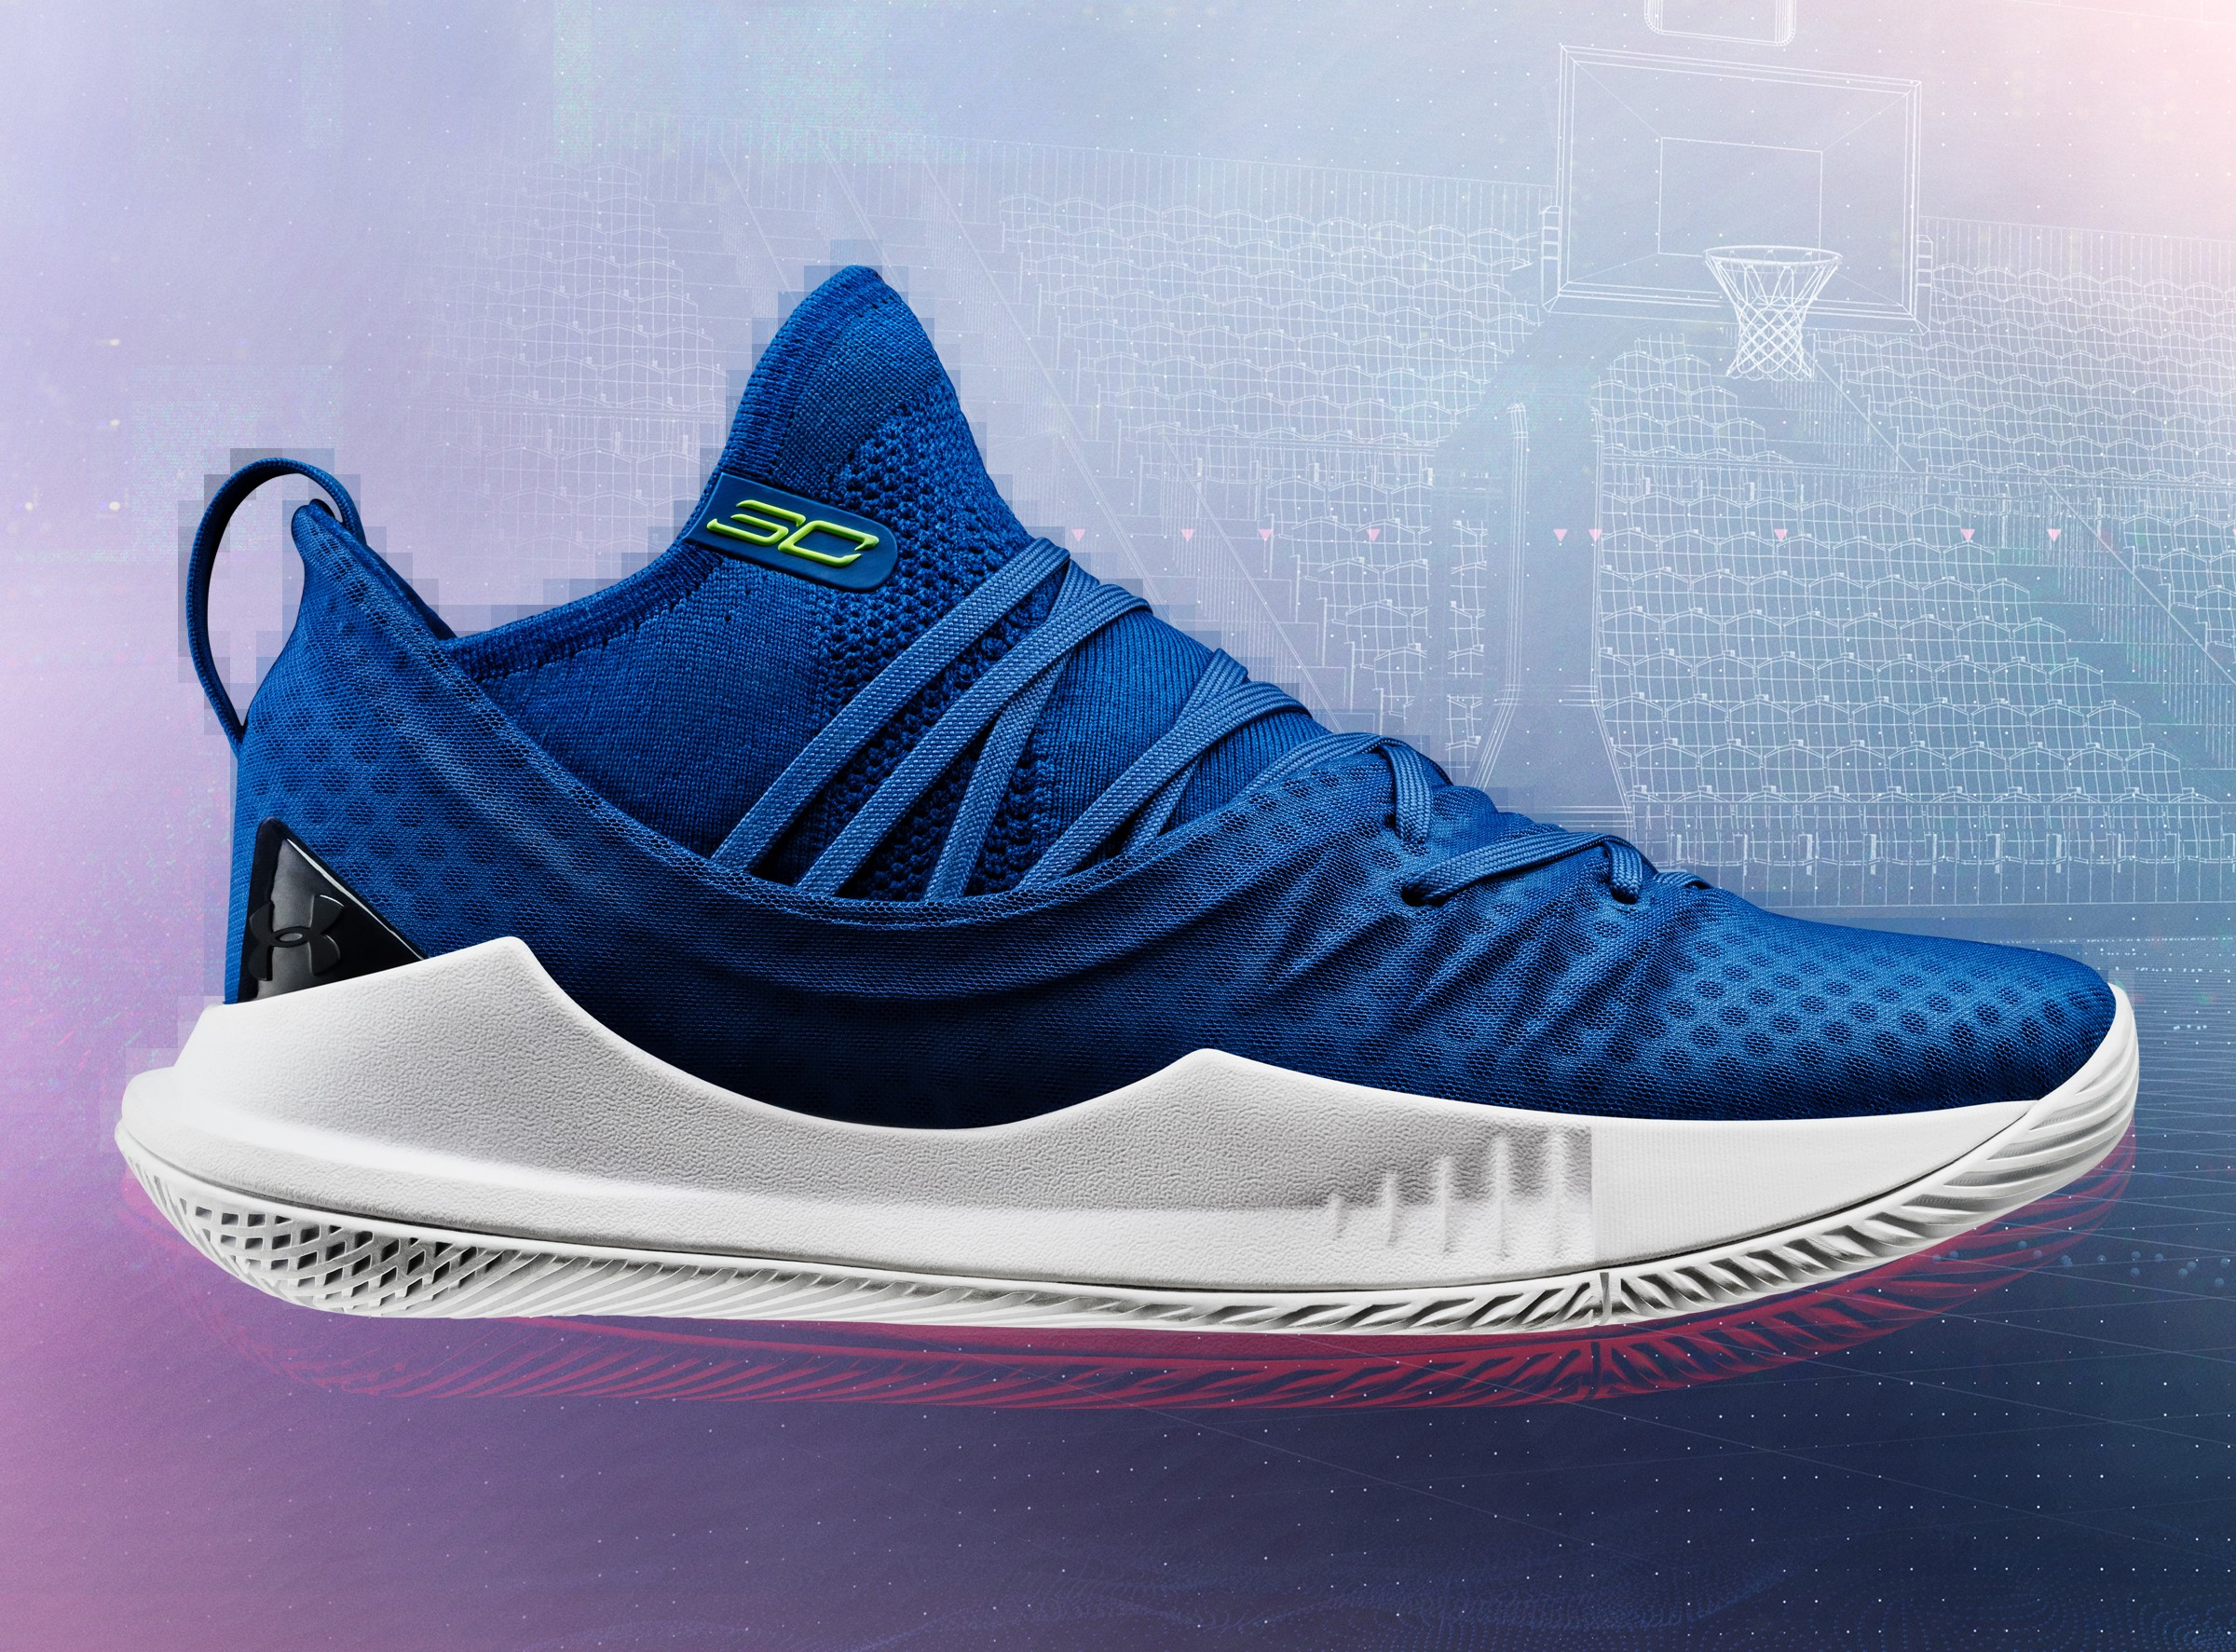 b013a77cd5dc under armour curry 5 moroccan blue on foot - WearTesters